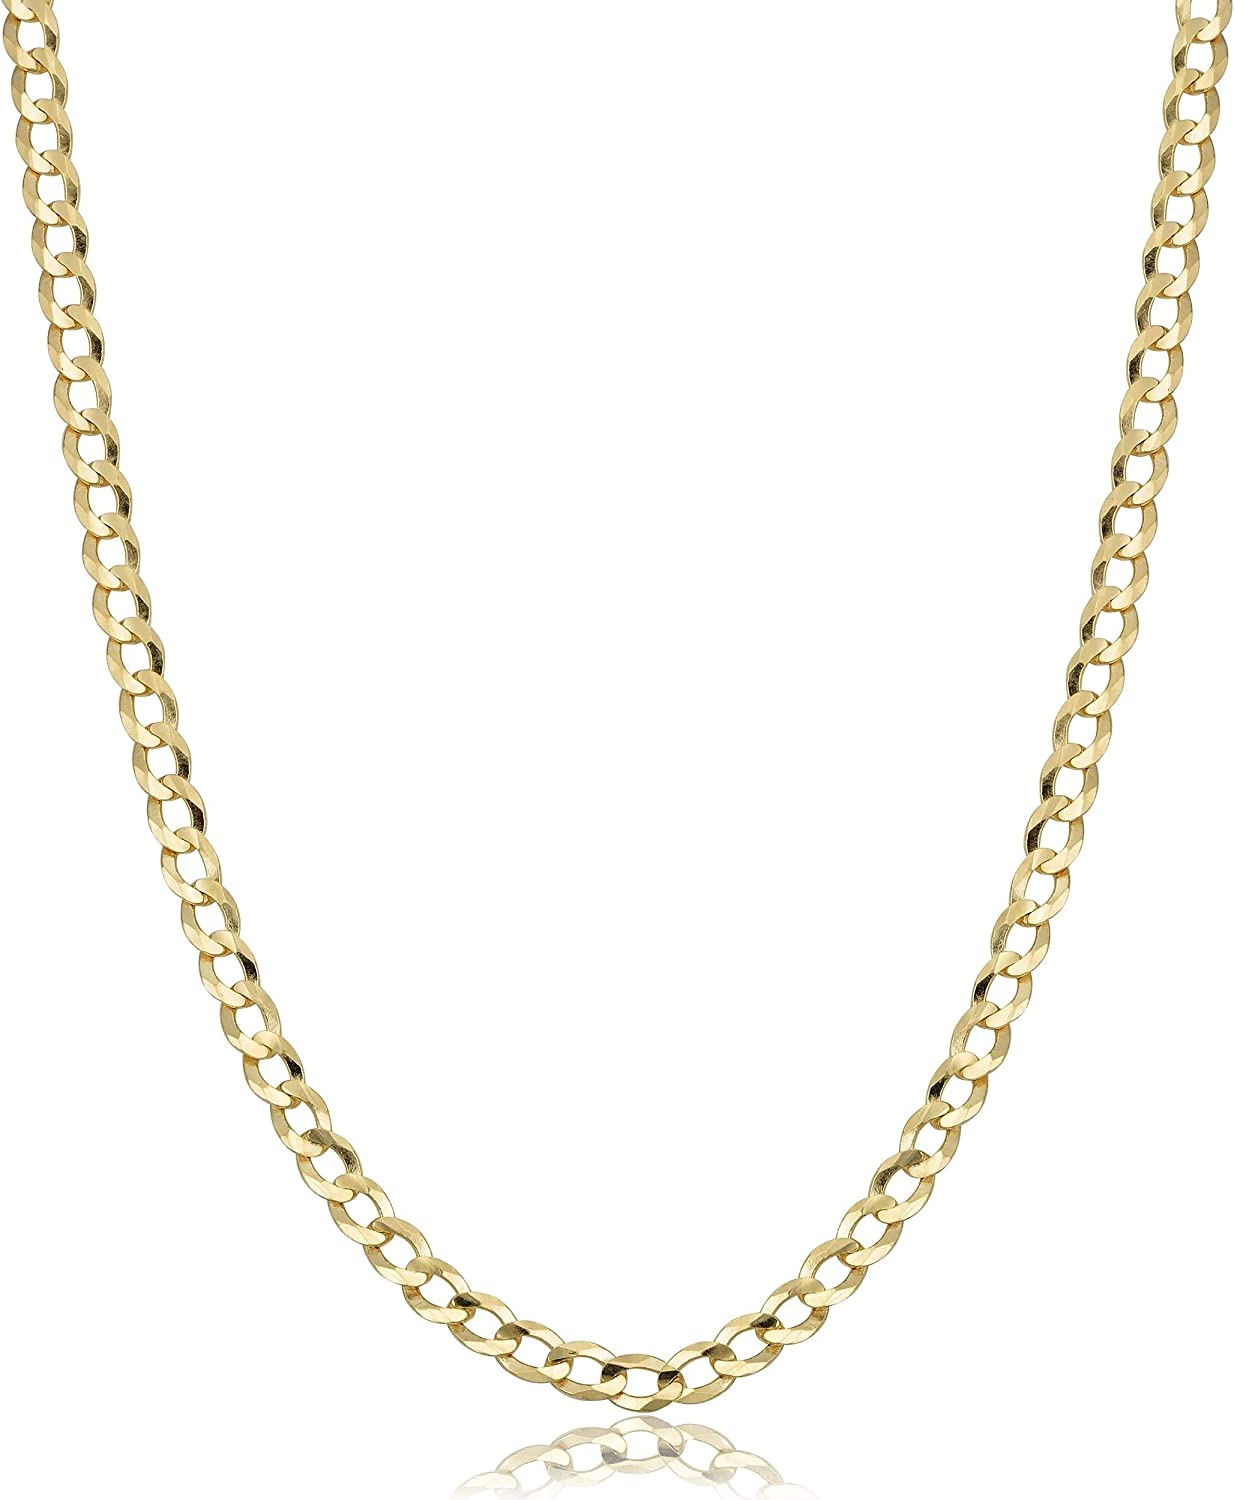 Authentic 10K Gold Cuban Curb Chain Link Necklace, 2MM 2.5MM Cuban Link Chain, Round Circle Gold Chain, 10 Karat Chains 10K Gold Chains, Gold Jewelry Men and Women 16-30